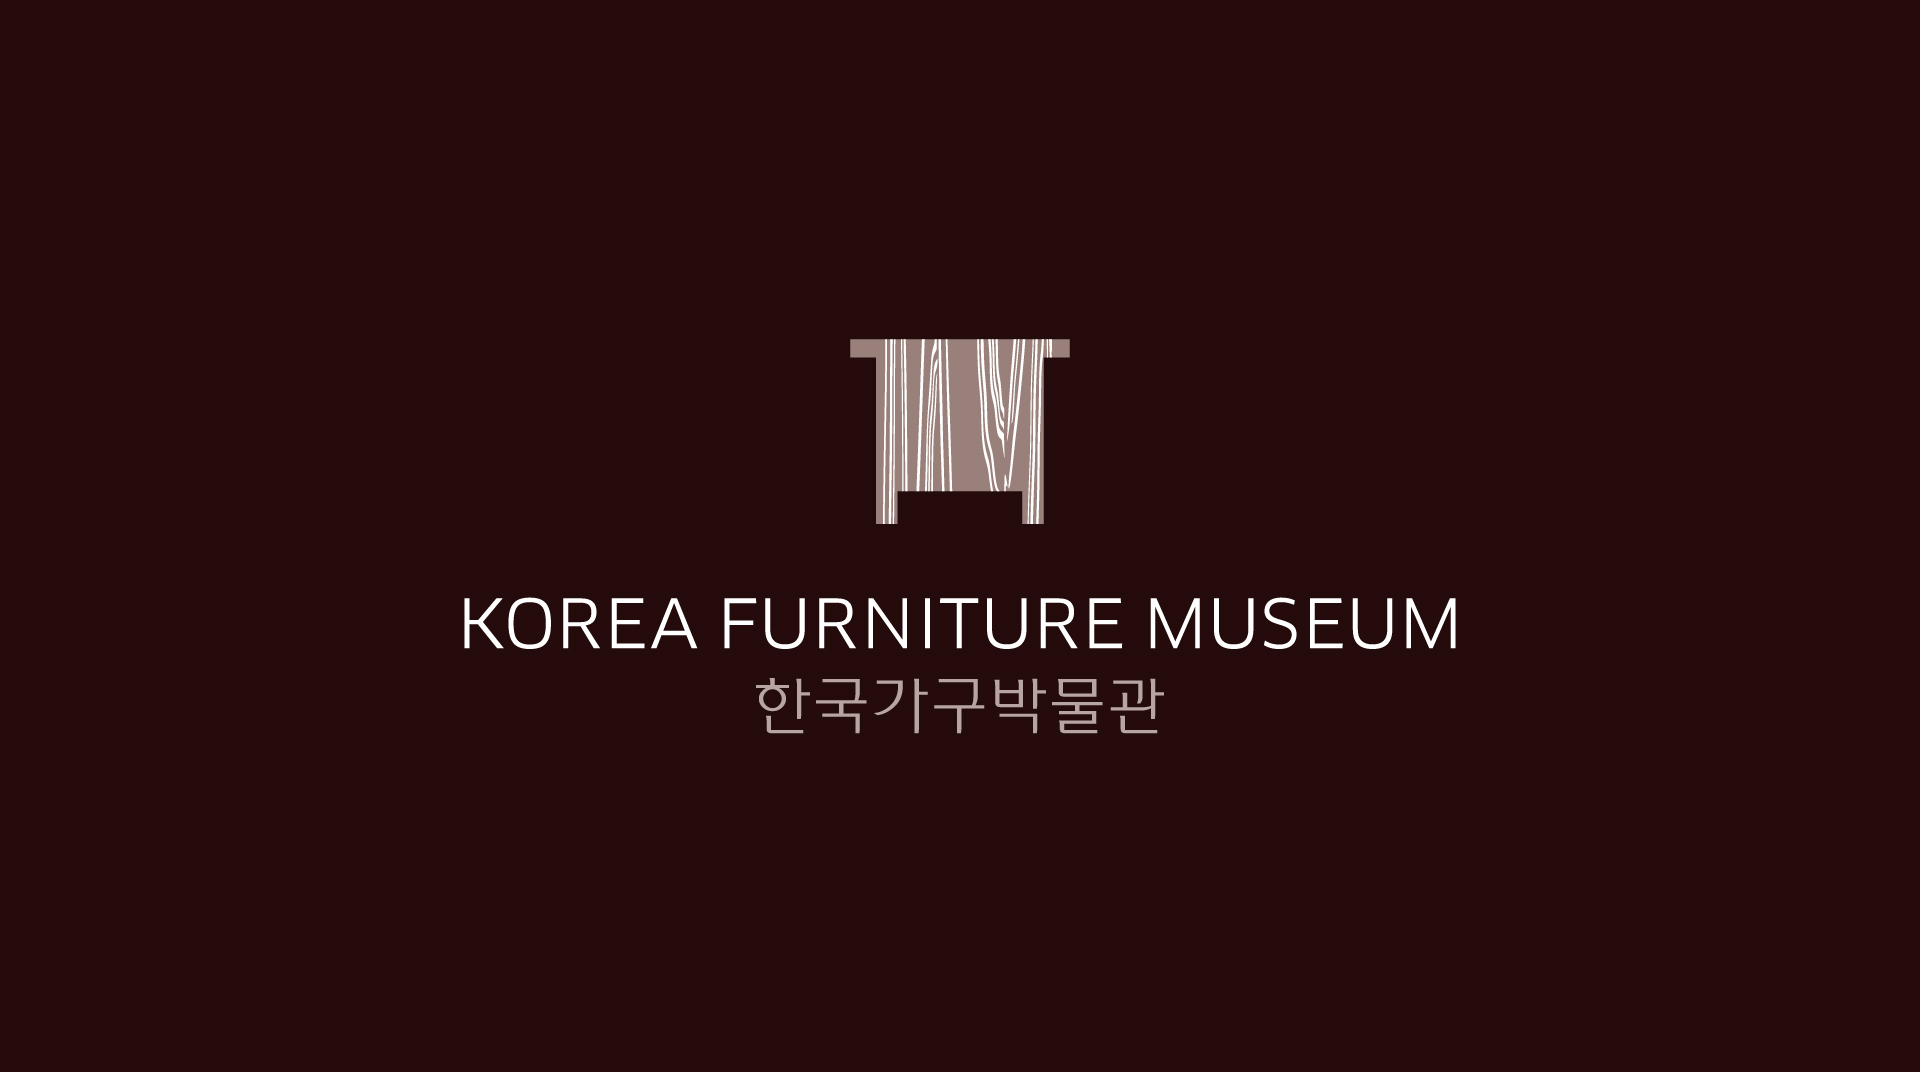 Korea Furniture Museum